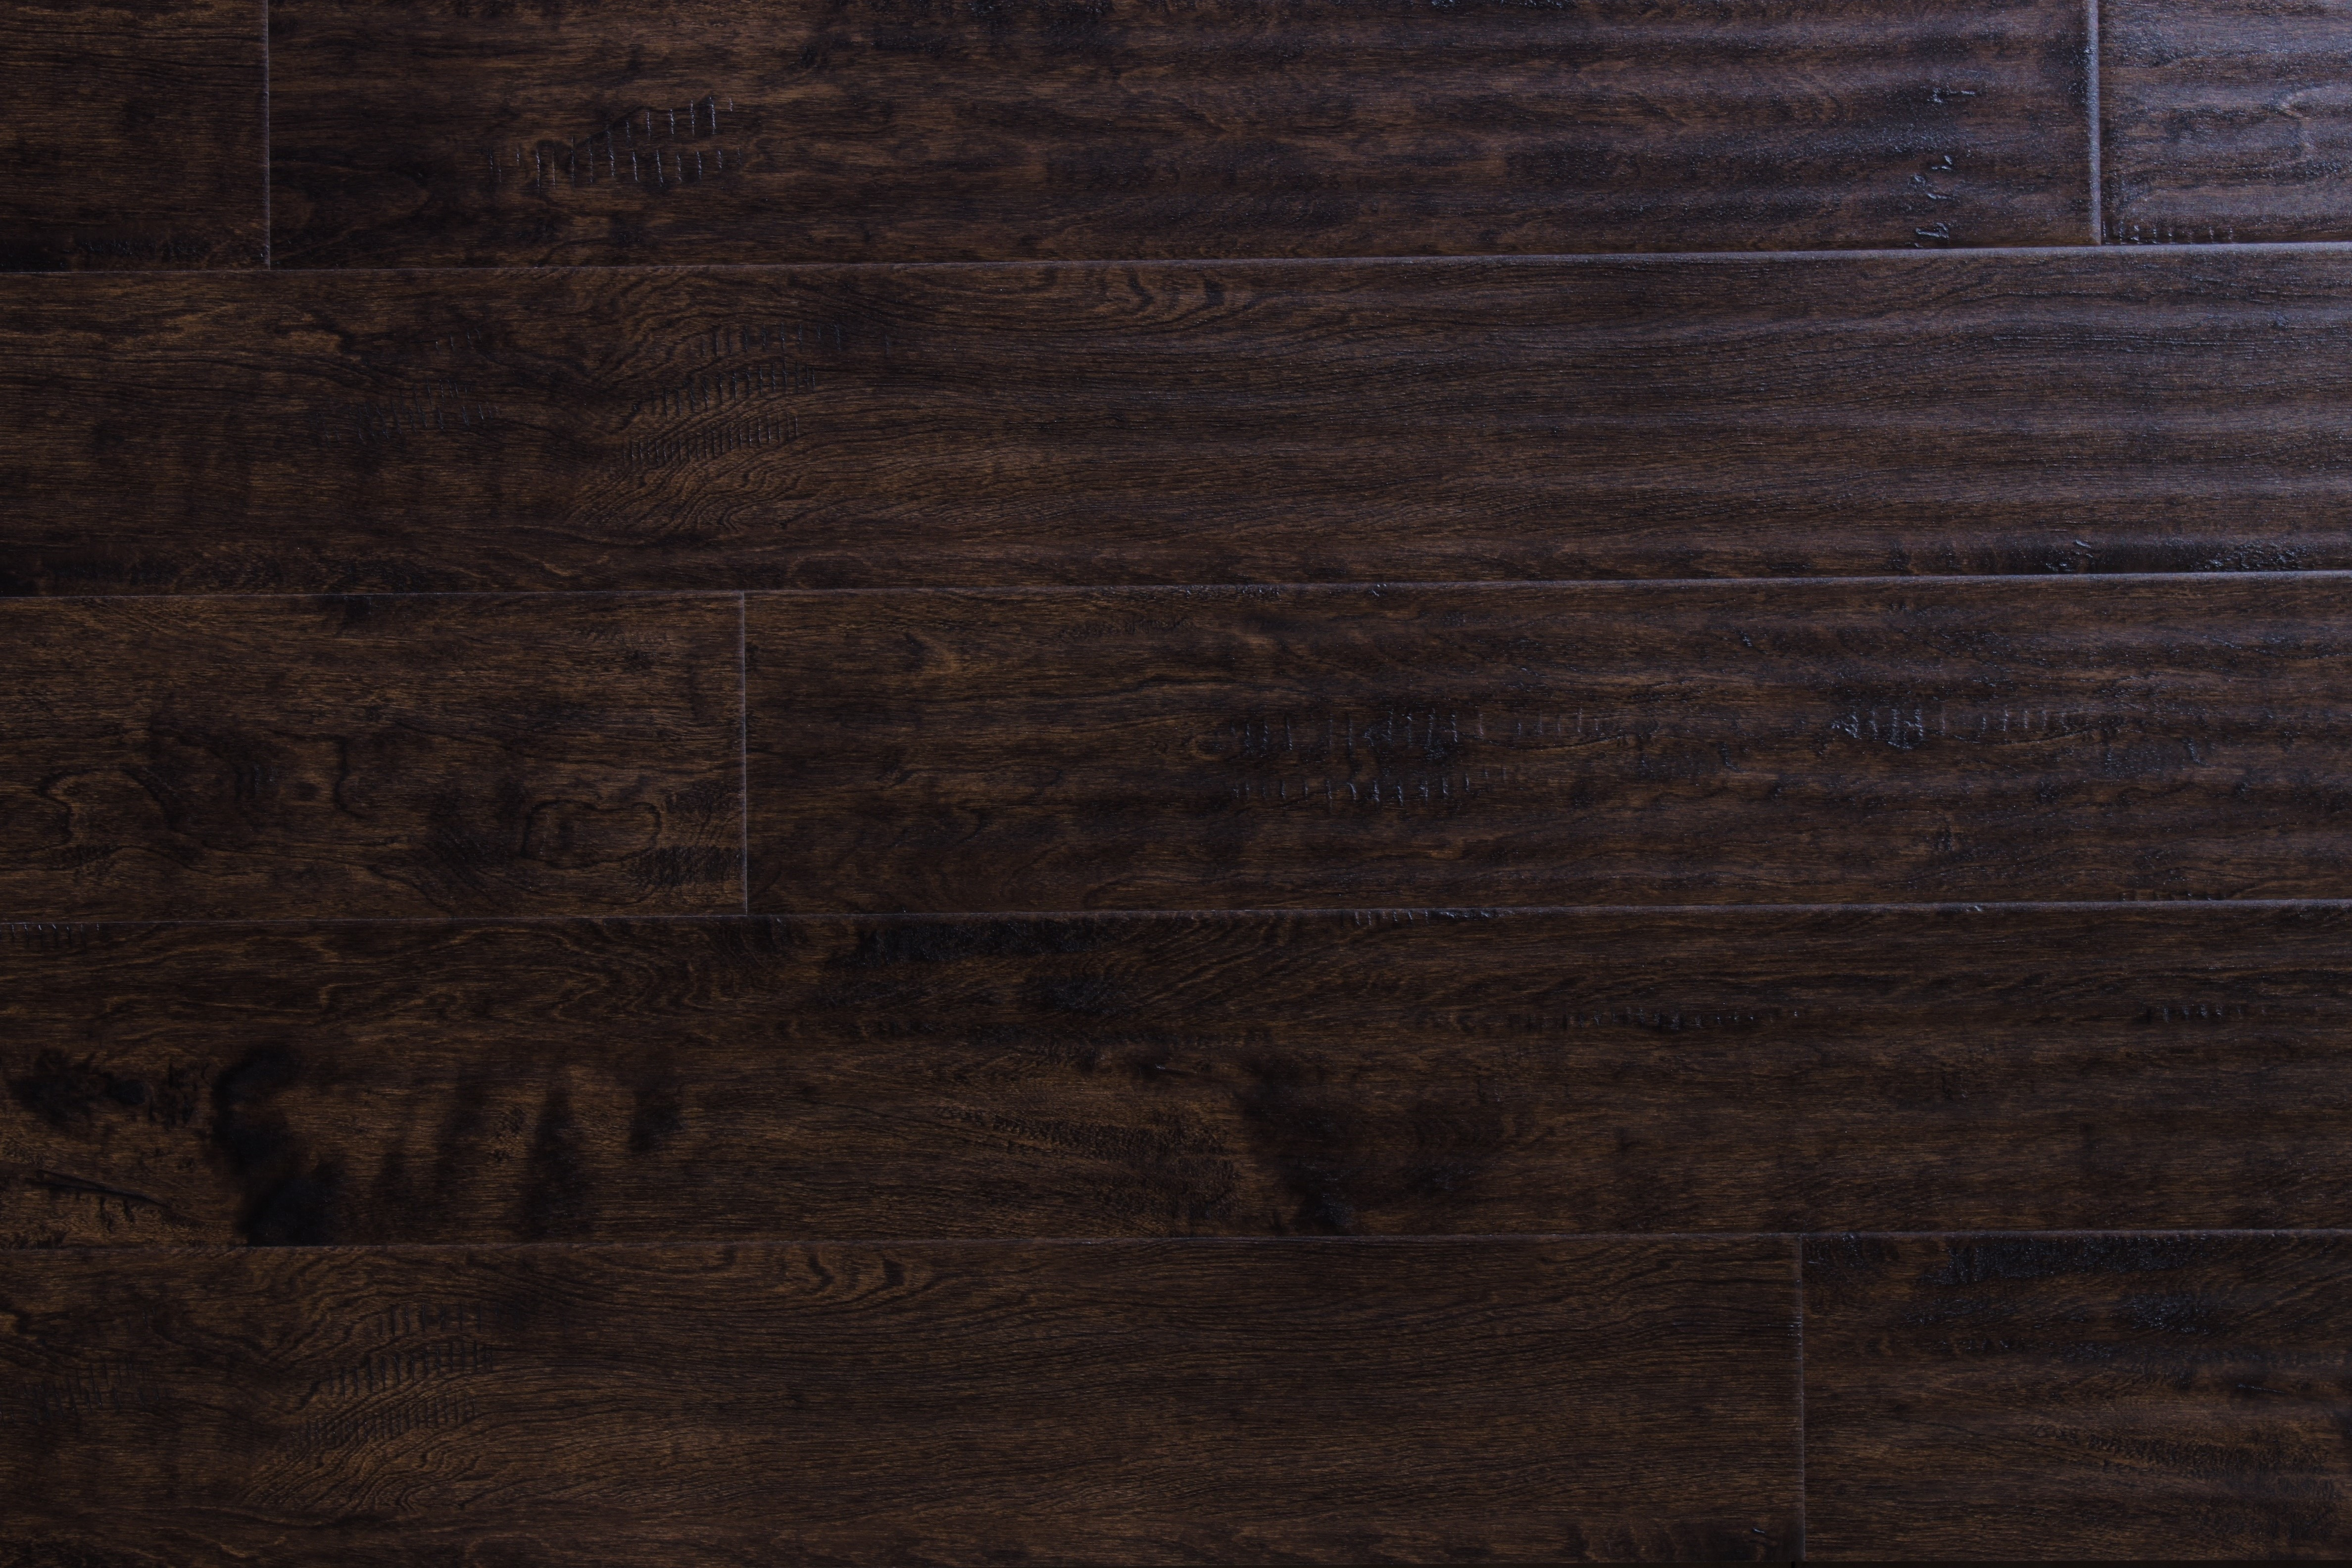 hardwood floor cost per foot of wood flooring free samples available at builddirecta with tailor multi gb 5874277bb8d3c